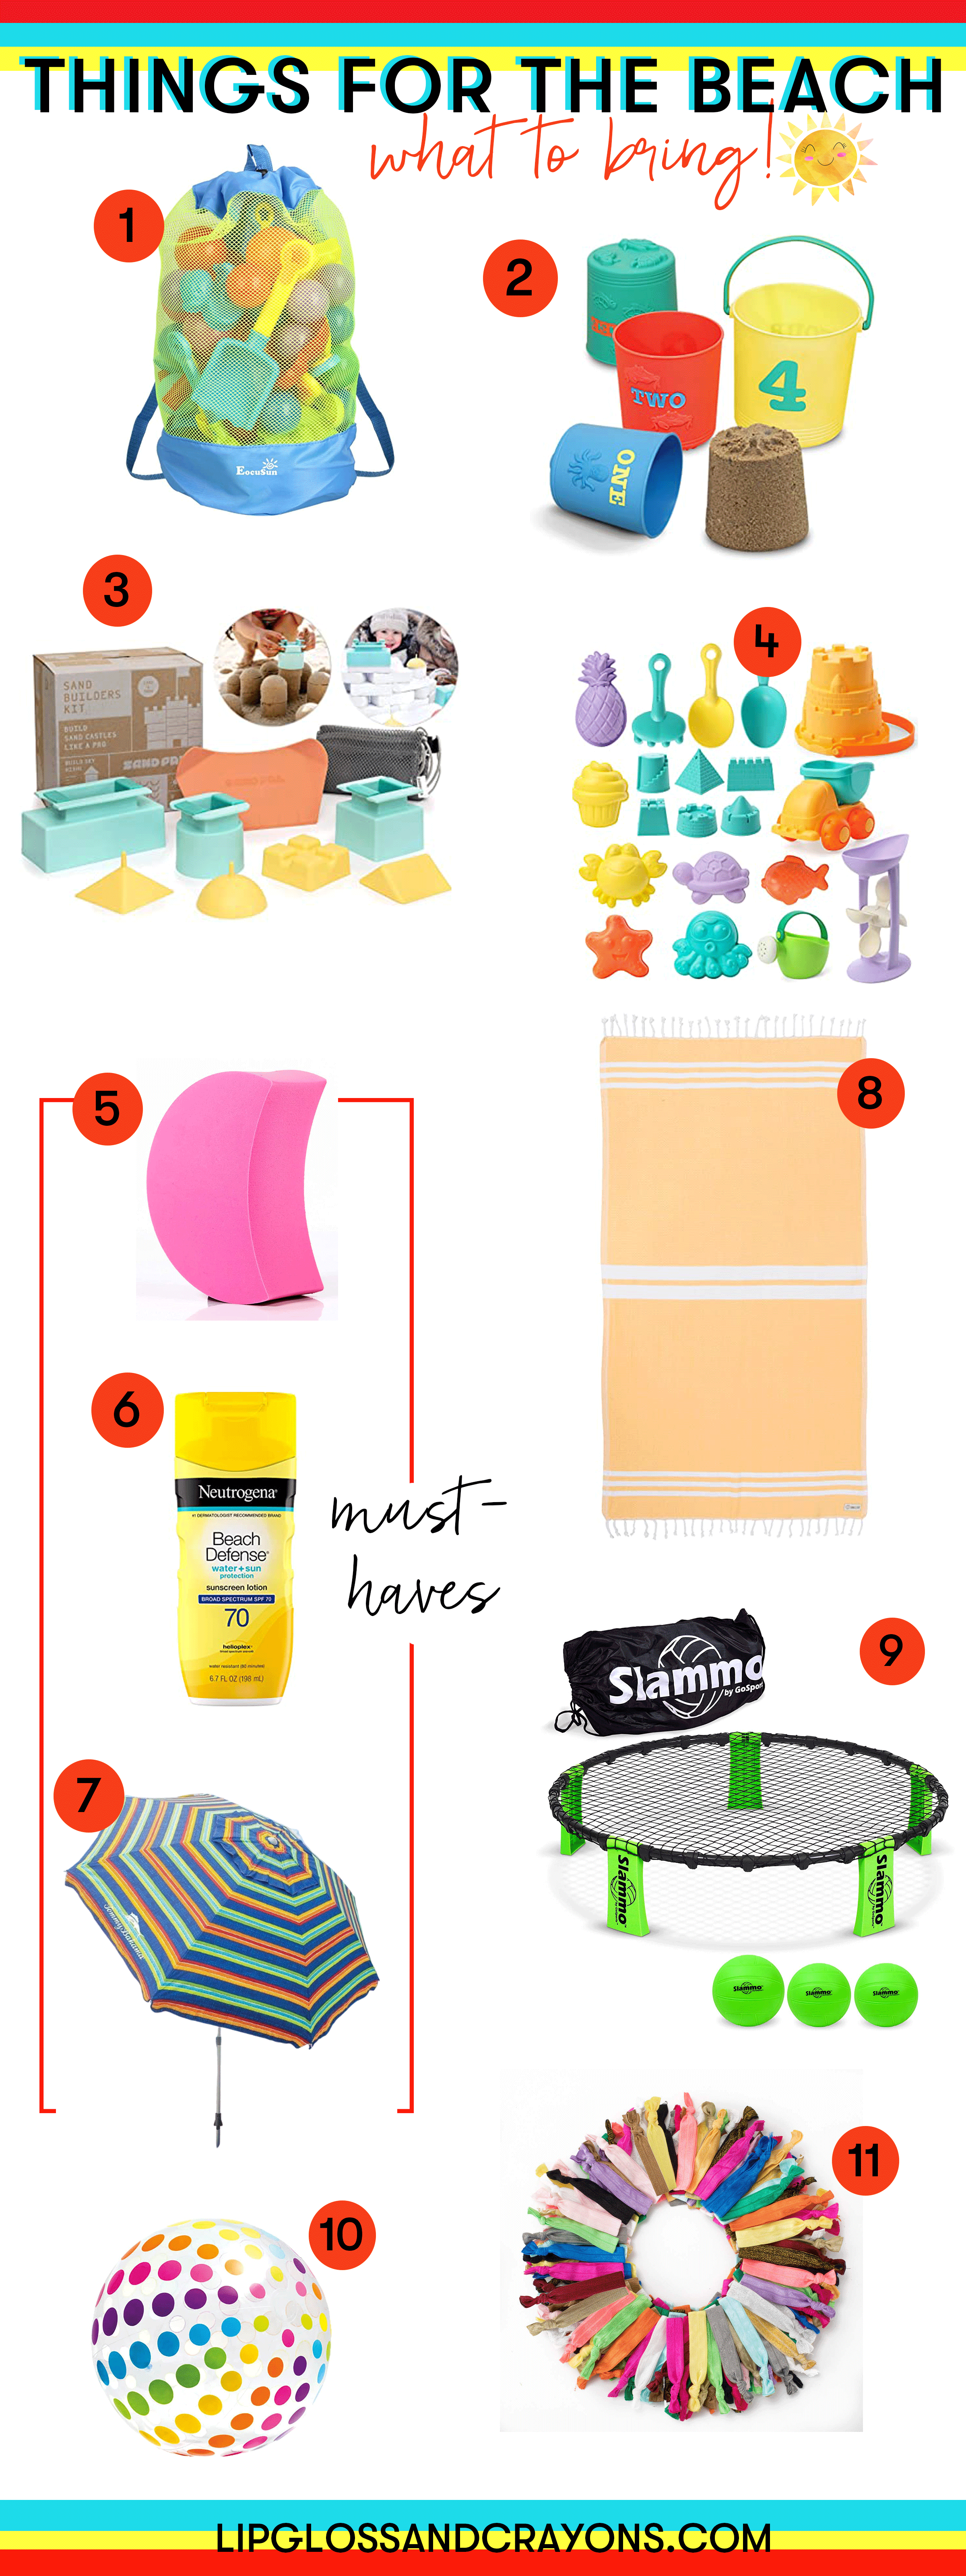 Things for the Beach: the ultimate list of what to pack